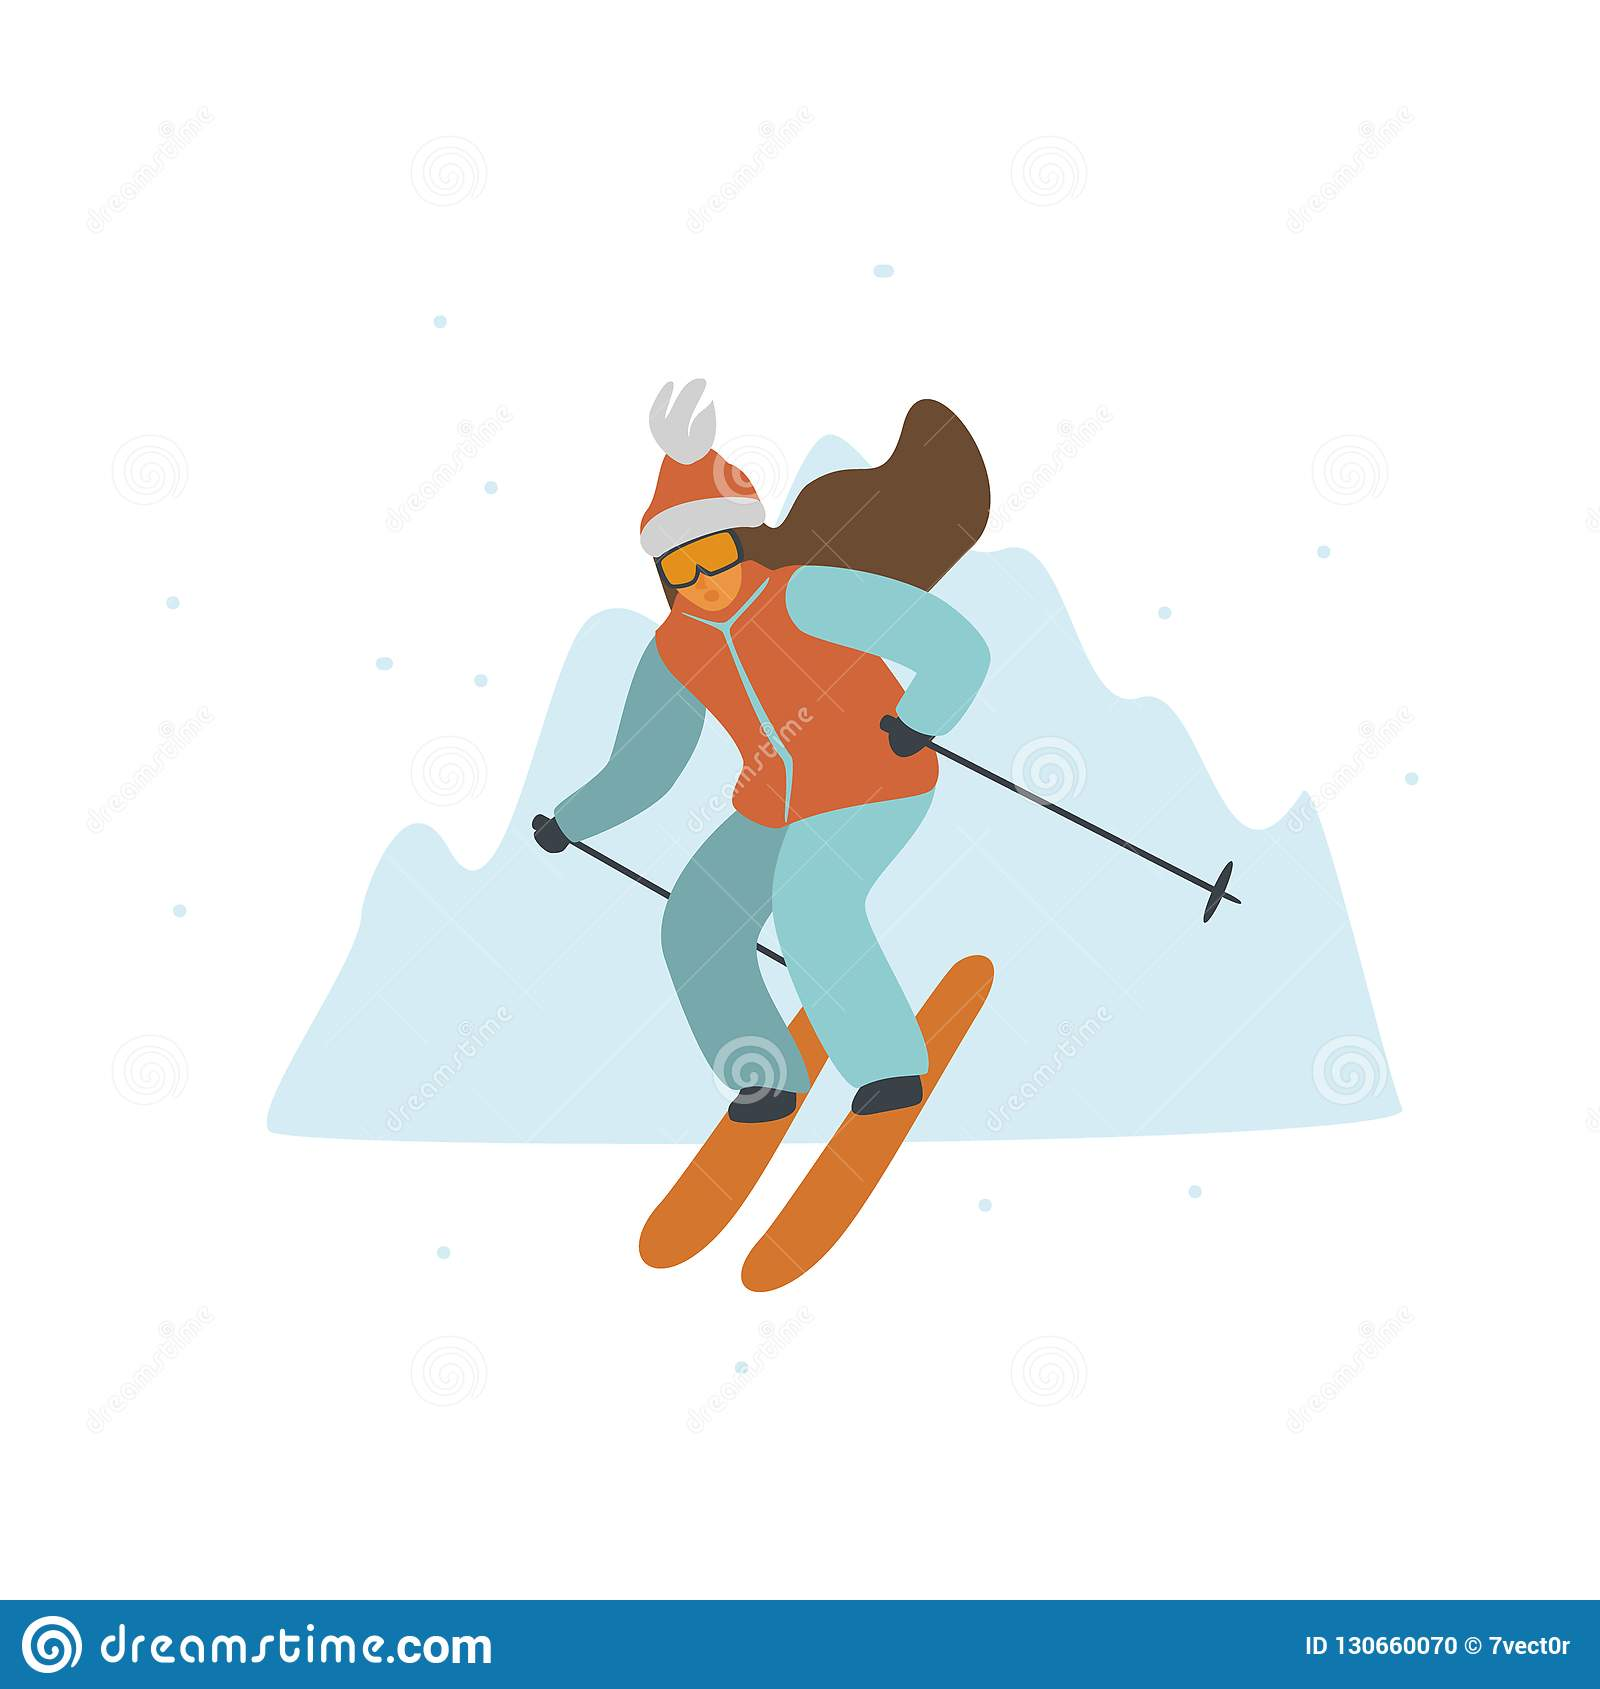 bfa8bccd4db0 Woman Skiing In Winter Mountains Resort Isolated Vector Illustration ...